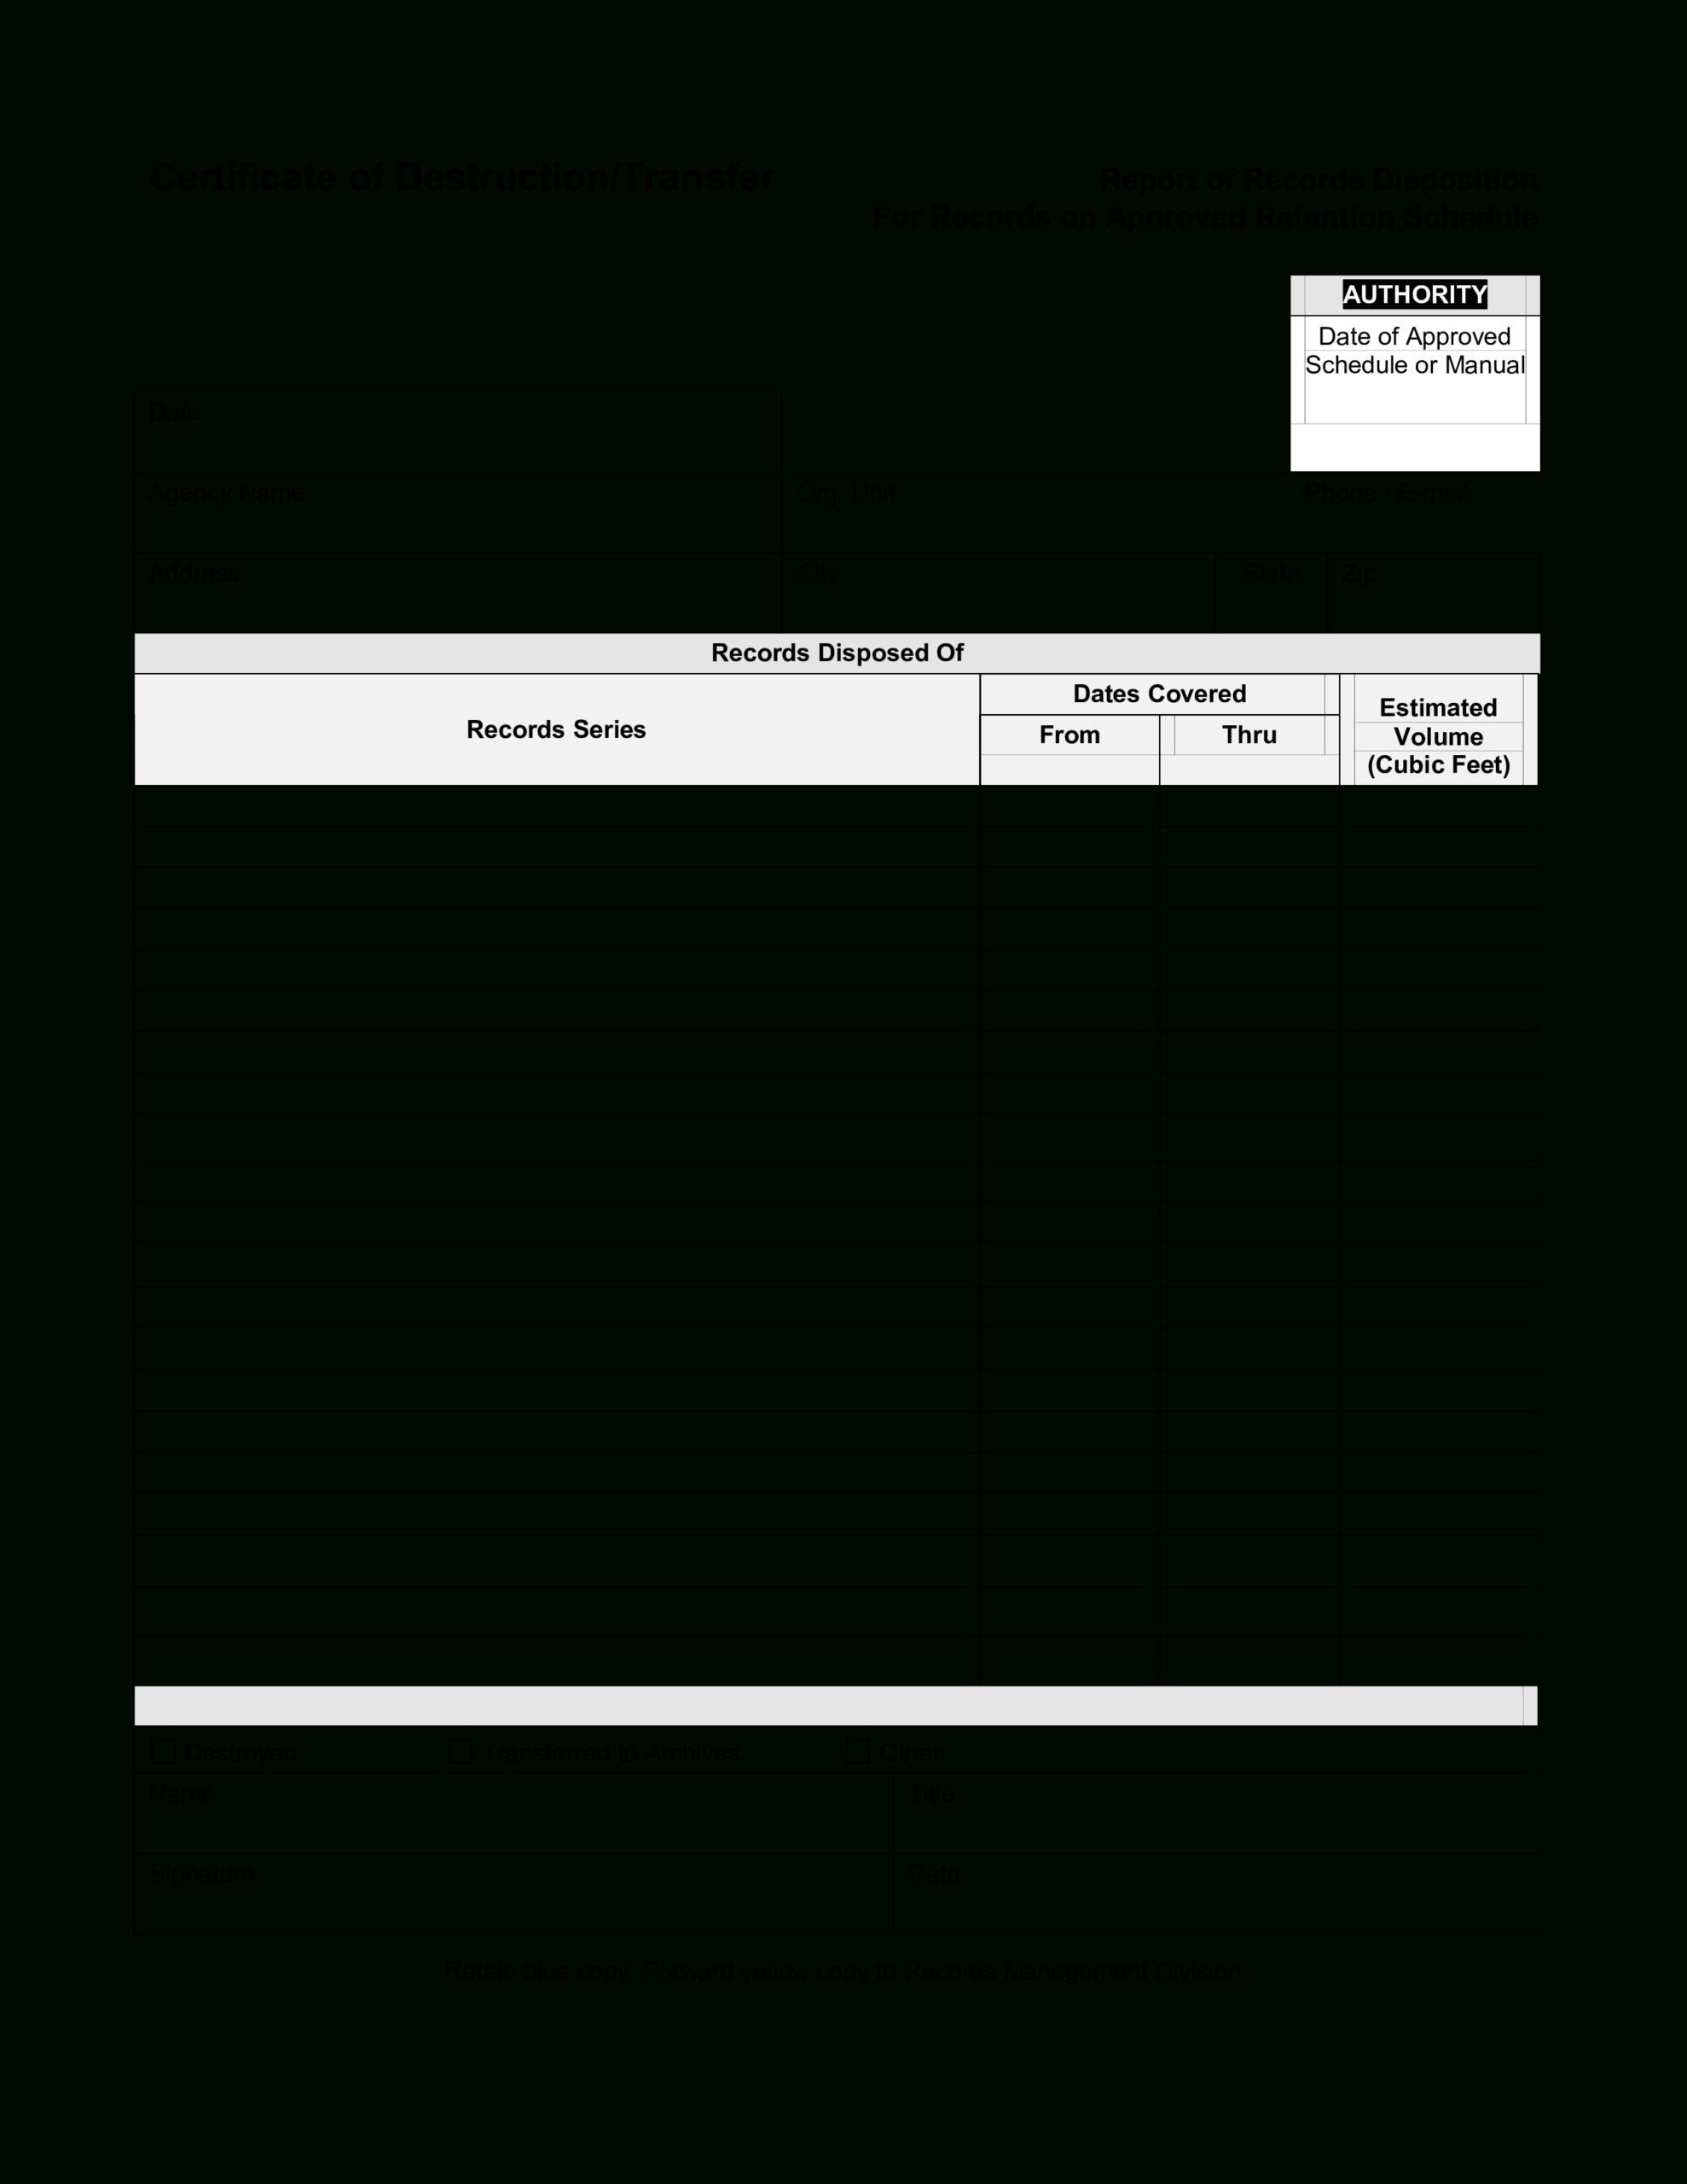 Blank Certificate Of Destruction | Templates At Regarding Destruction Certificate Template